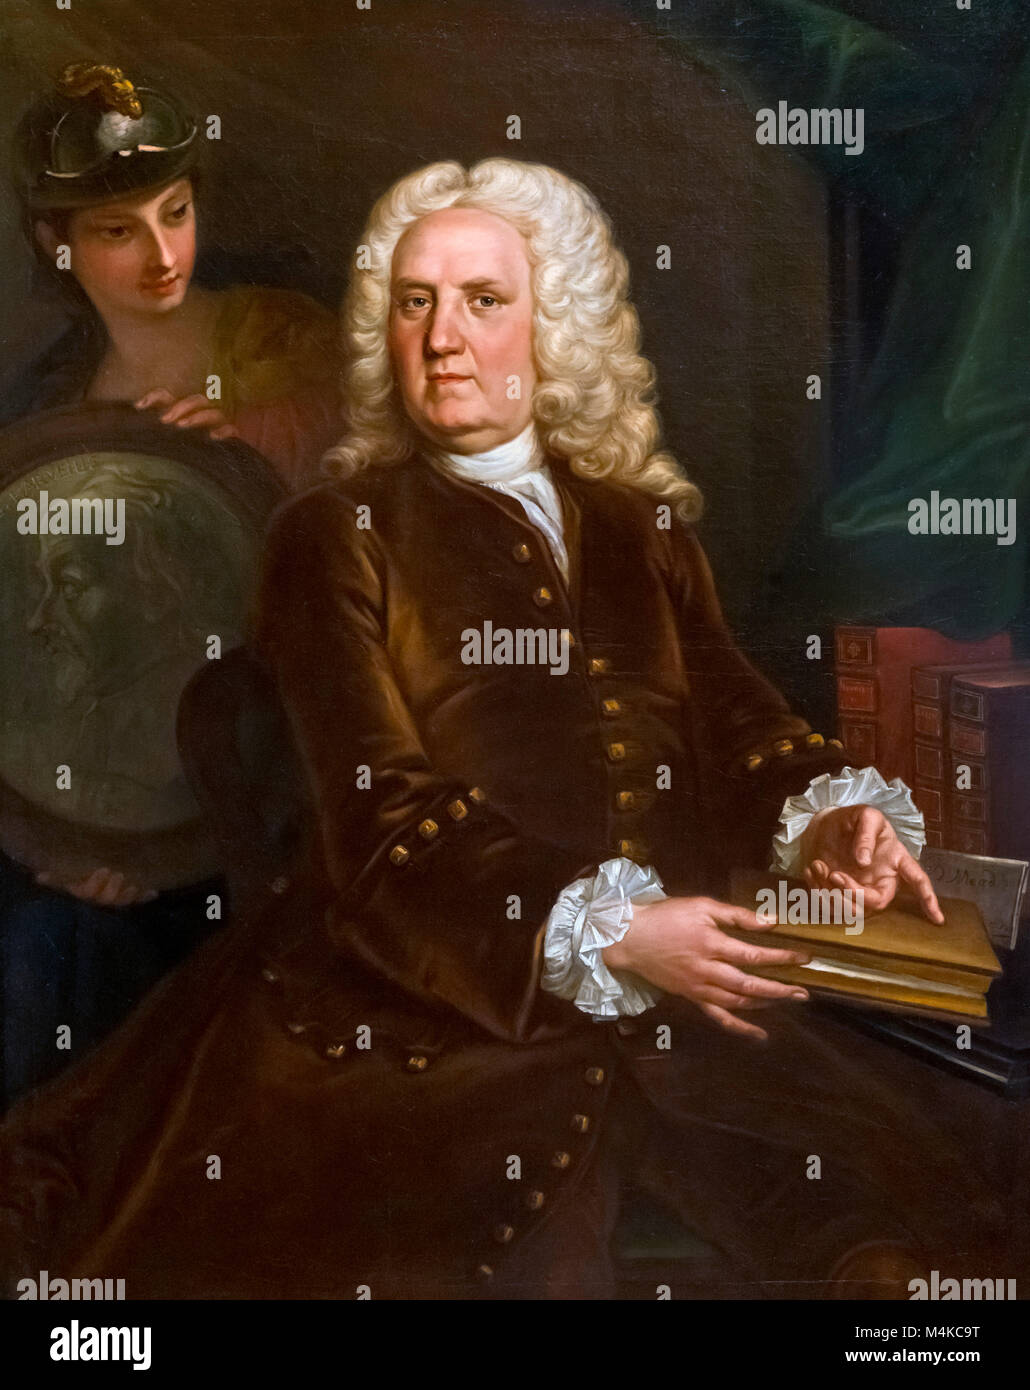 Richard Mead (1673-1754), portrait of the eminent 18th century physician by unknown artist, oil on canvas, c.1740 - Stock Image